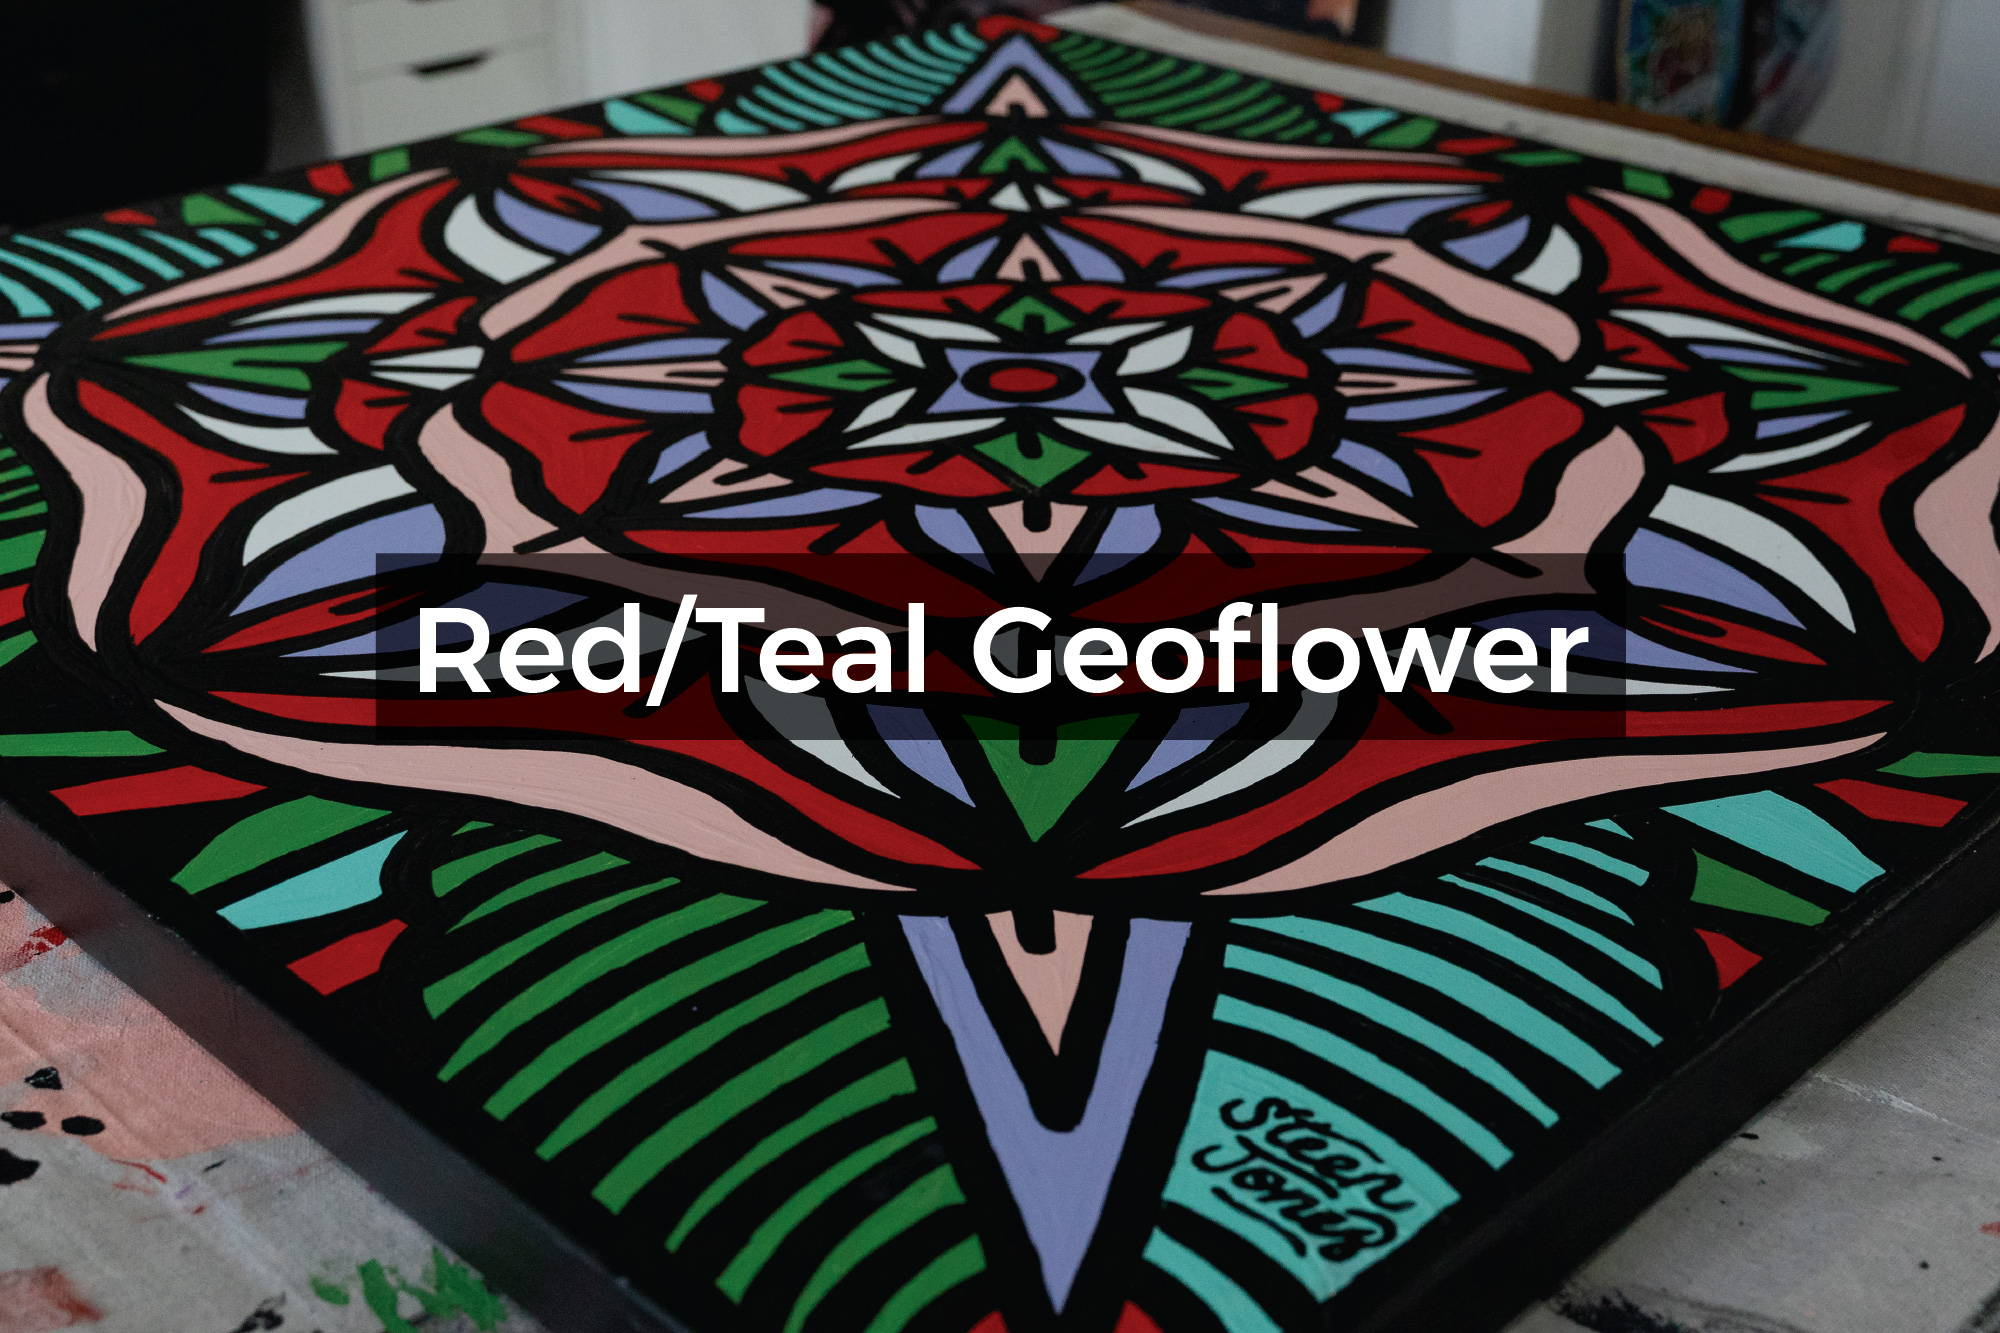 Red/Teal Geoflower canvas by Steen Jones